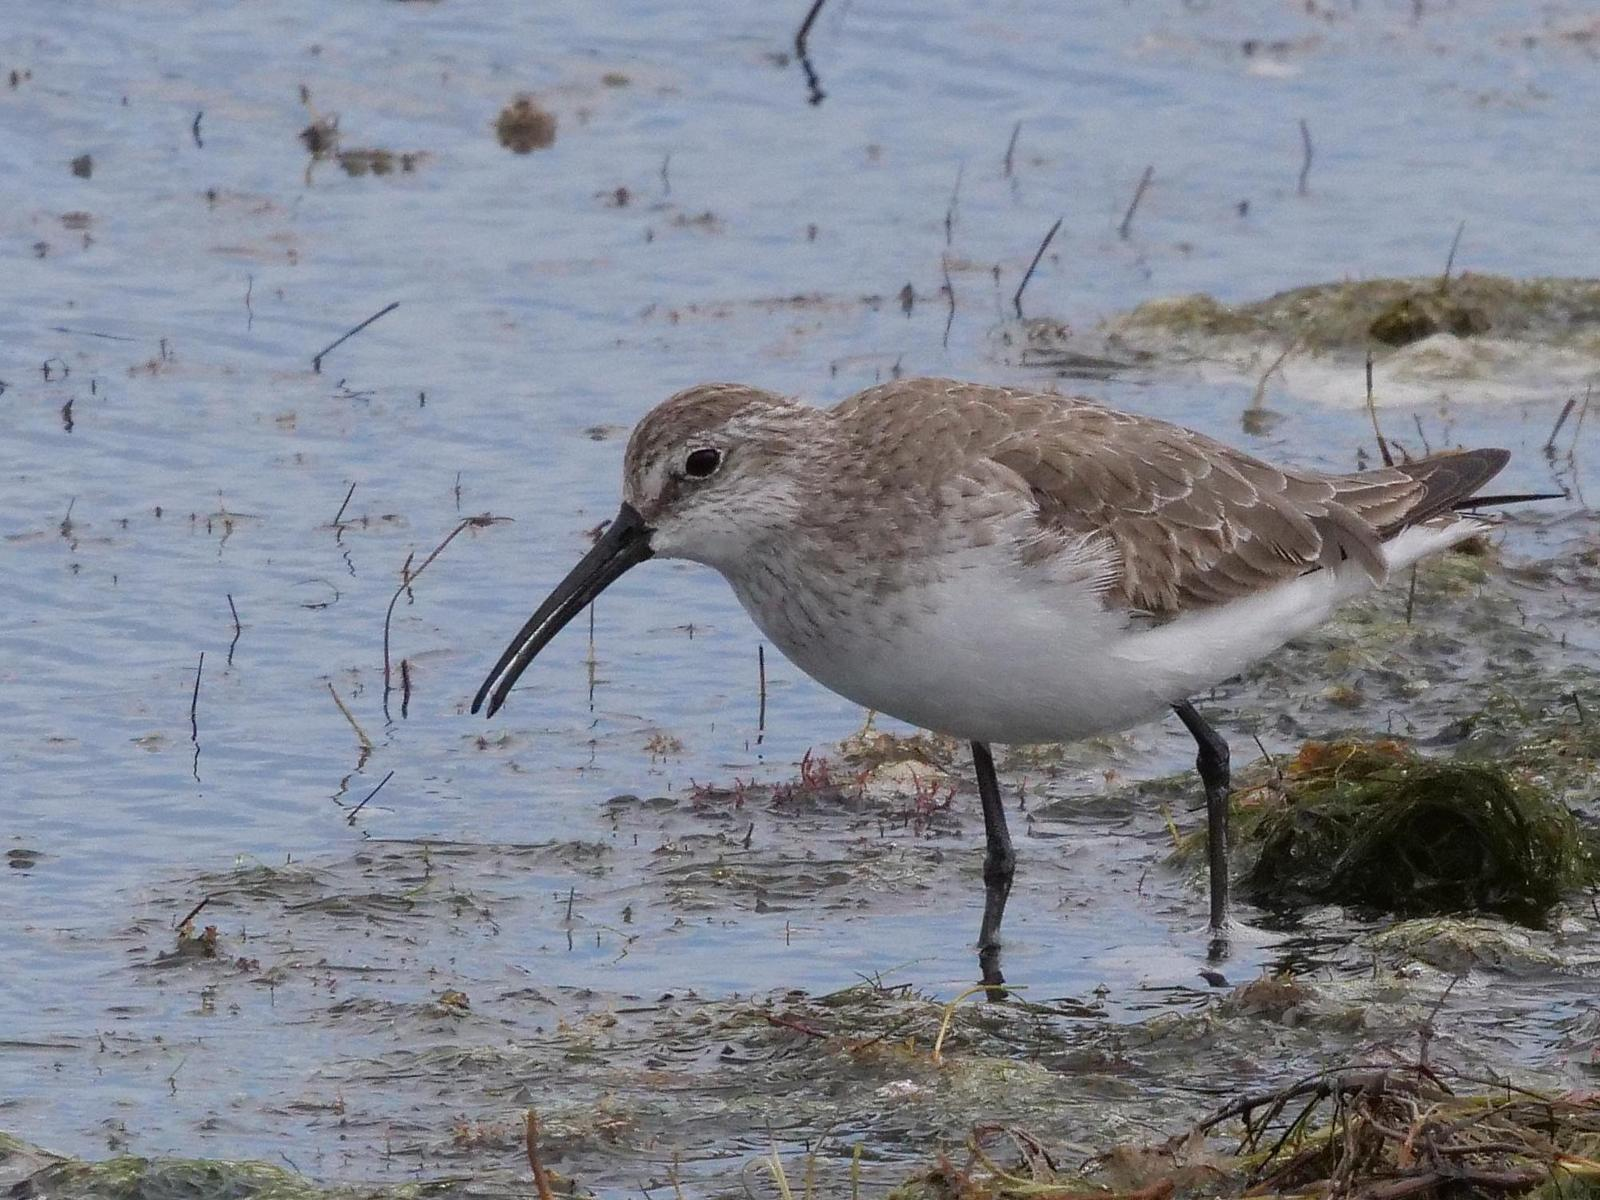 Curlew Sandpiper Photo by Peter Lowe